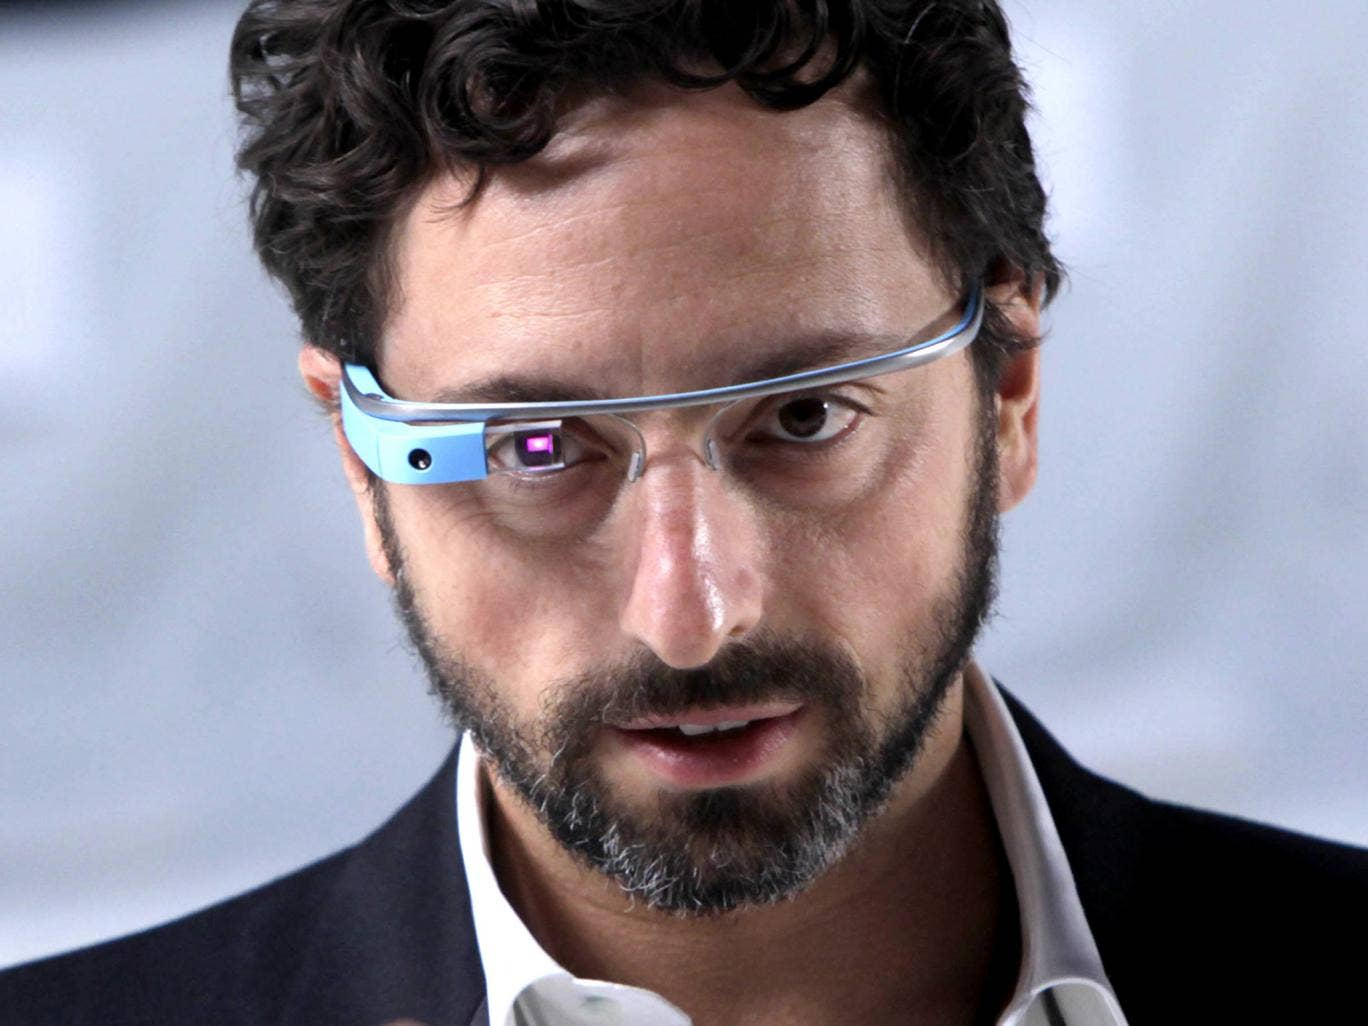 The mystery businessman who bankrolled the creation of the world's first lab-grown burger has been revealed as Google co-founder Sergey Brin.